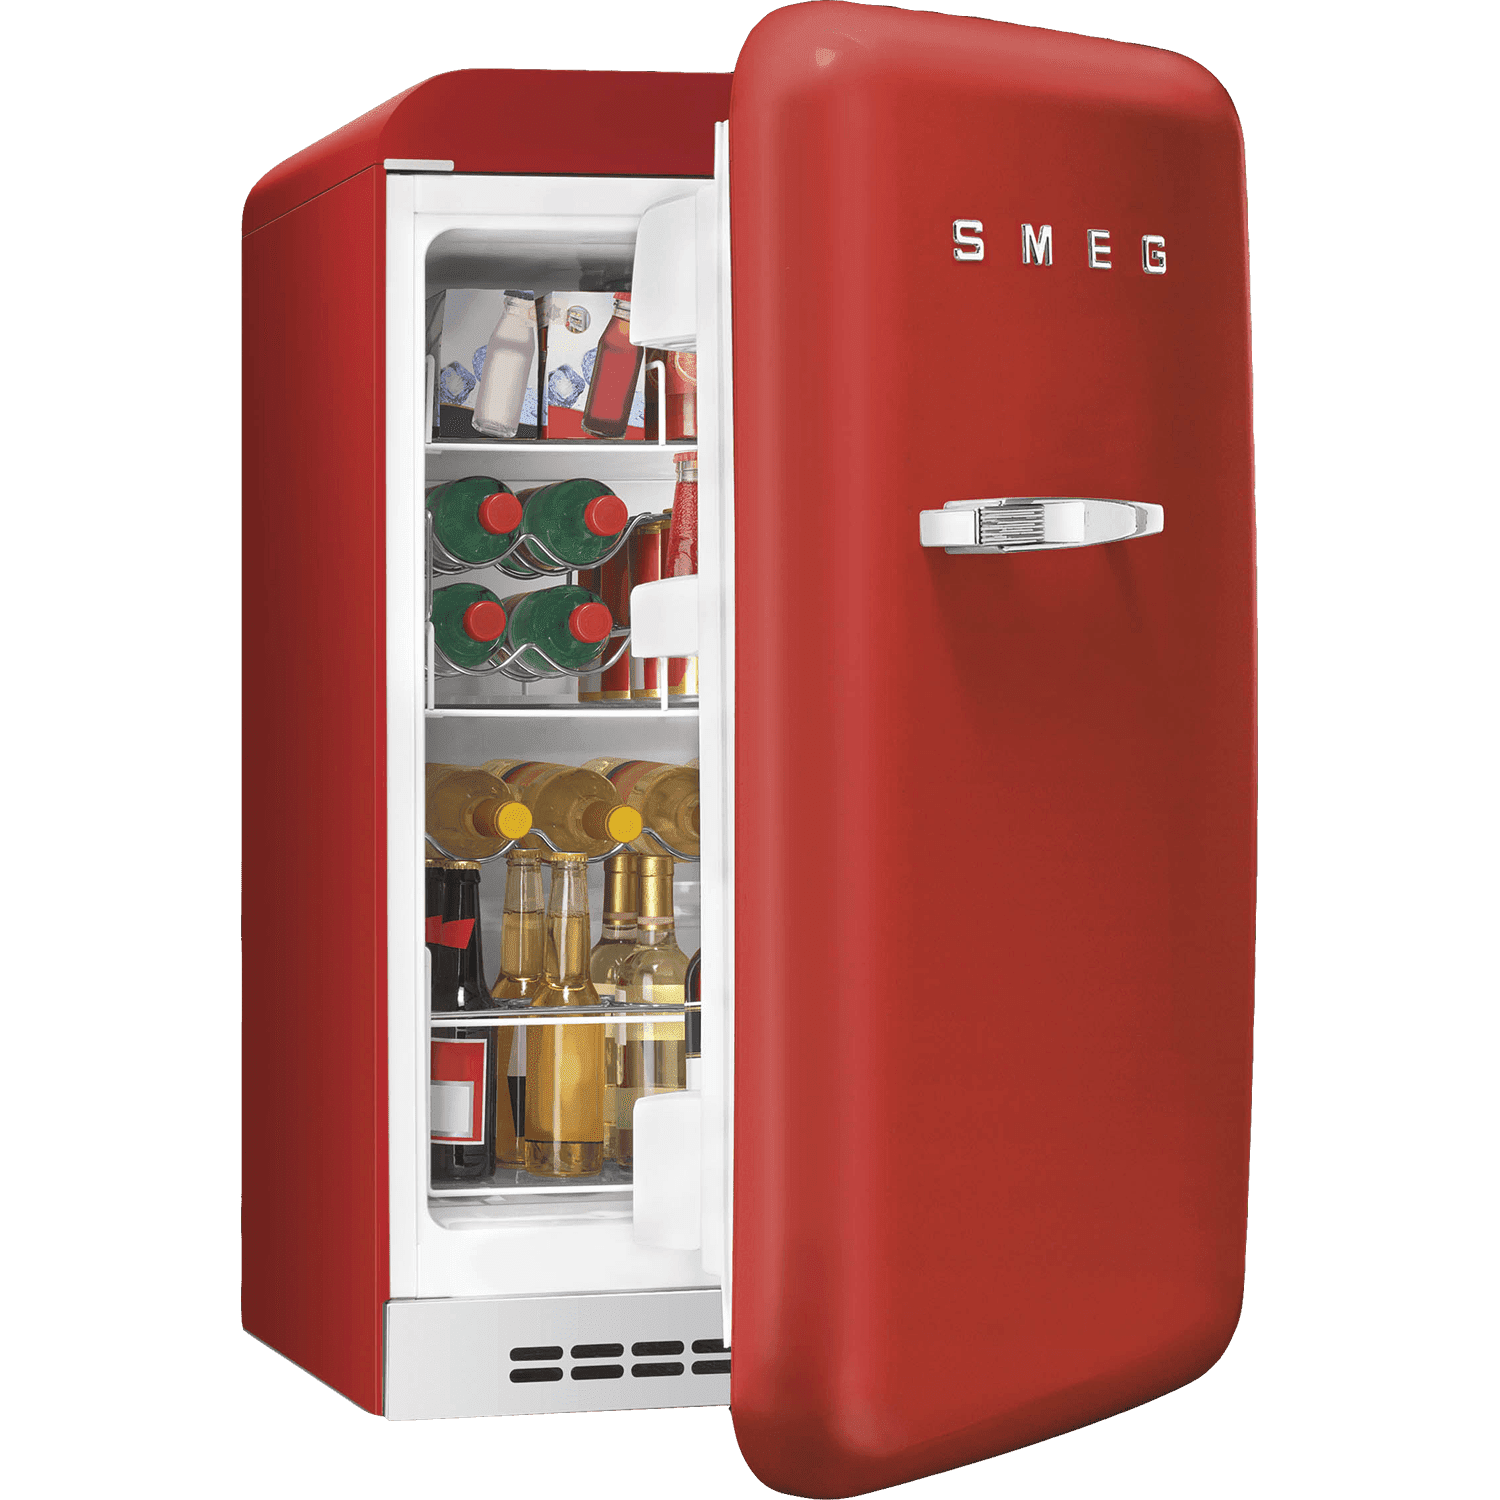 Vintage Fridge: Lisa Romeo Writes (the Blog): Friday Fridge Clean-Out